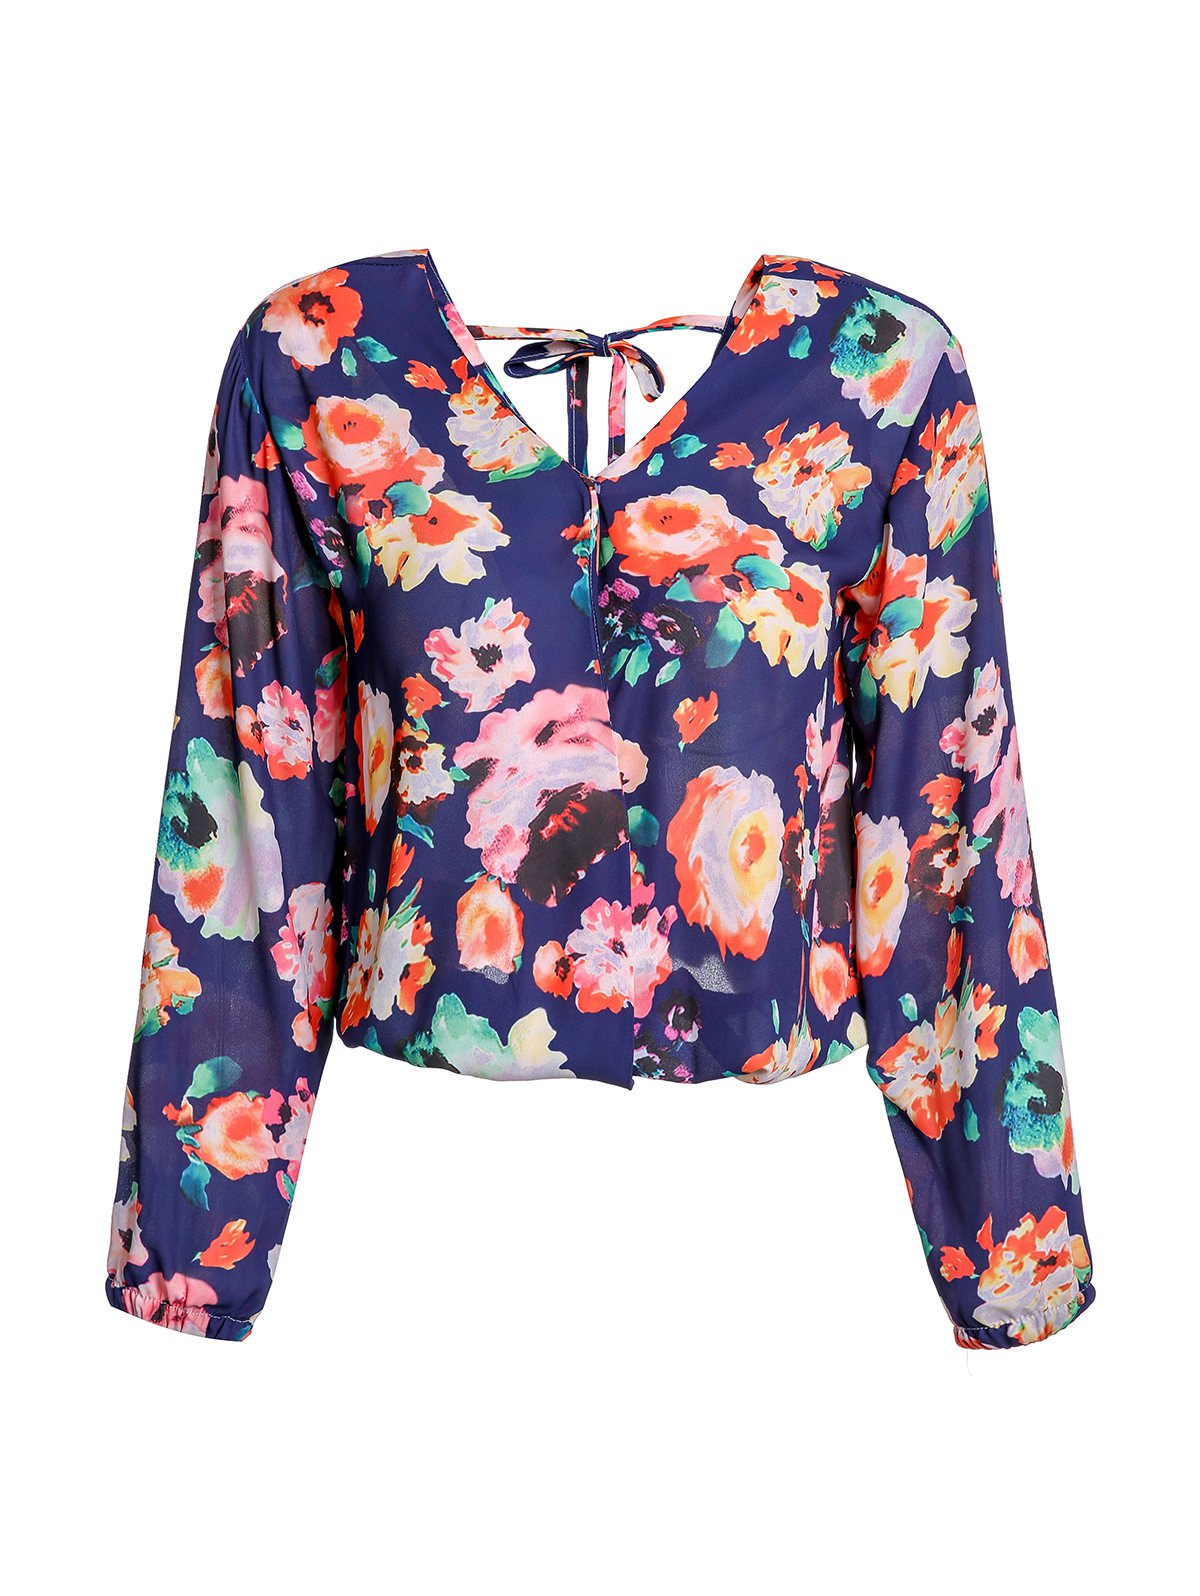 Stylish Women's V-Neck Long Sleeve Cut Out  Floral Print Blouse